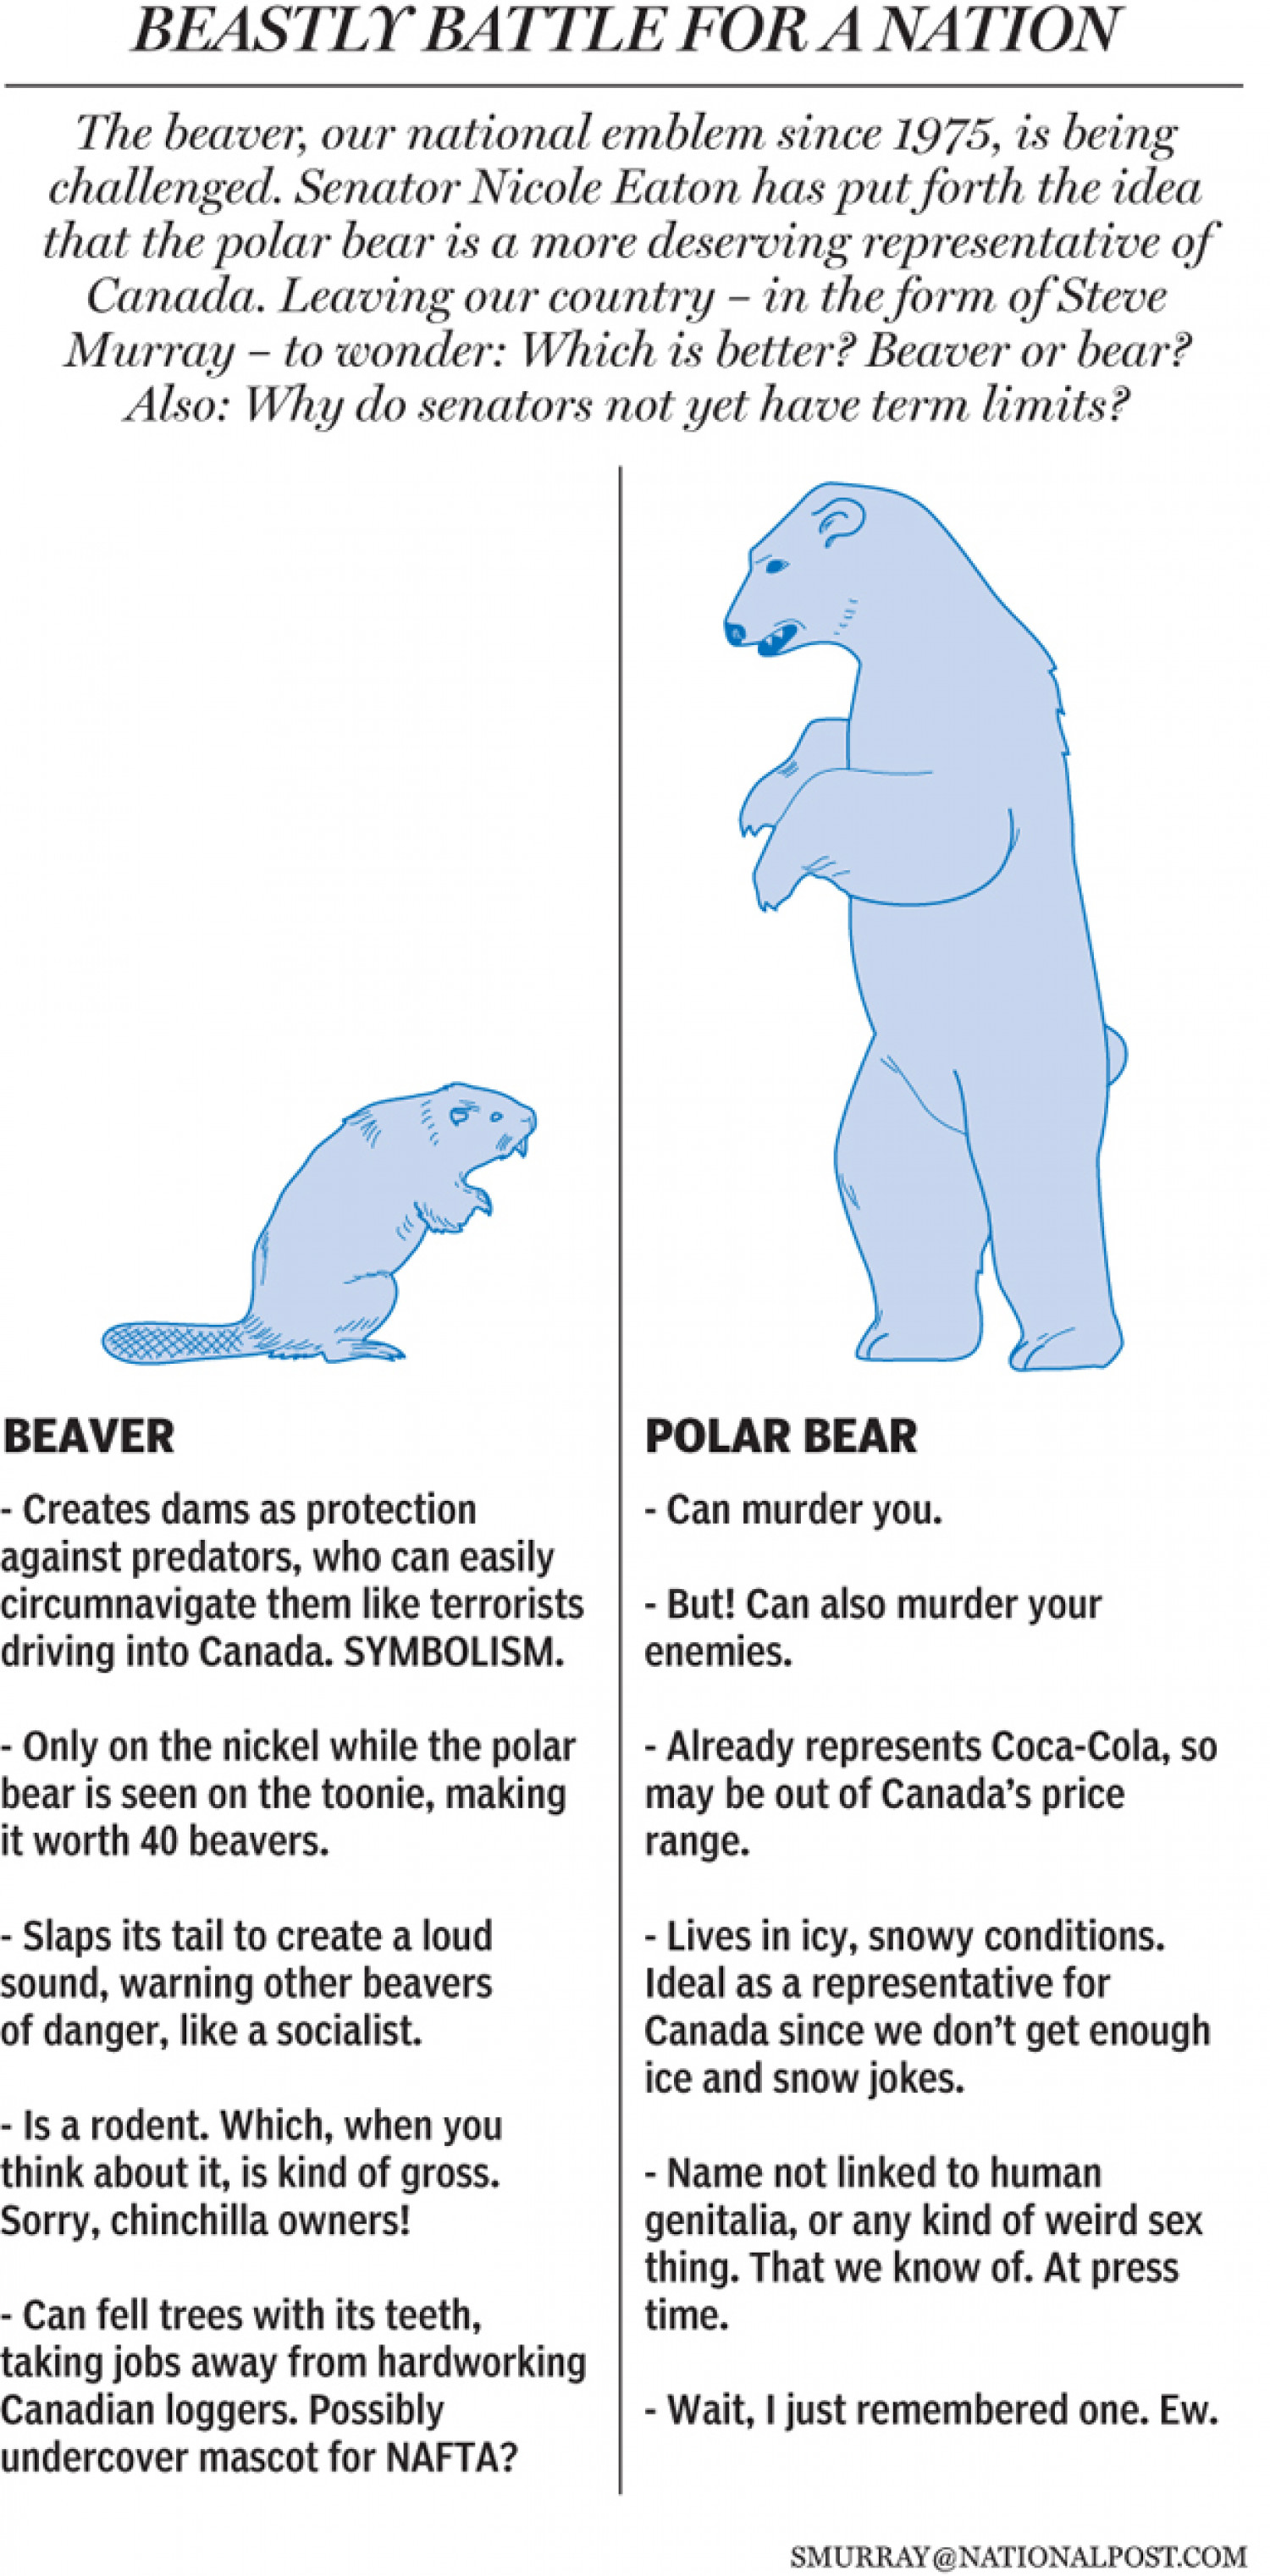 Should a Polar Bear Replace the Beaver as Canada's National Emblem? Infographic